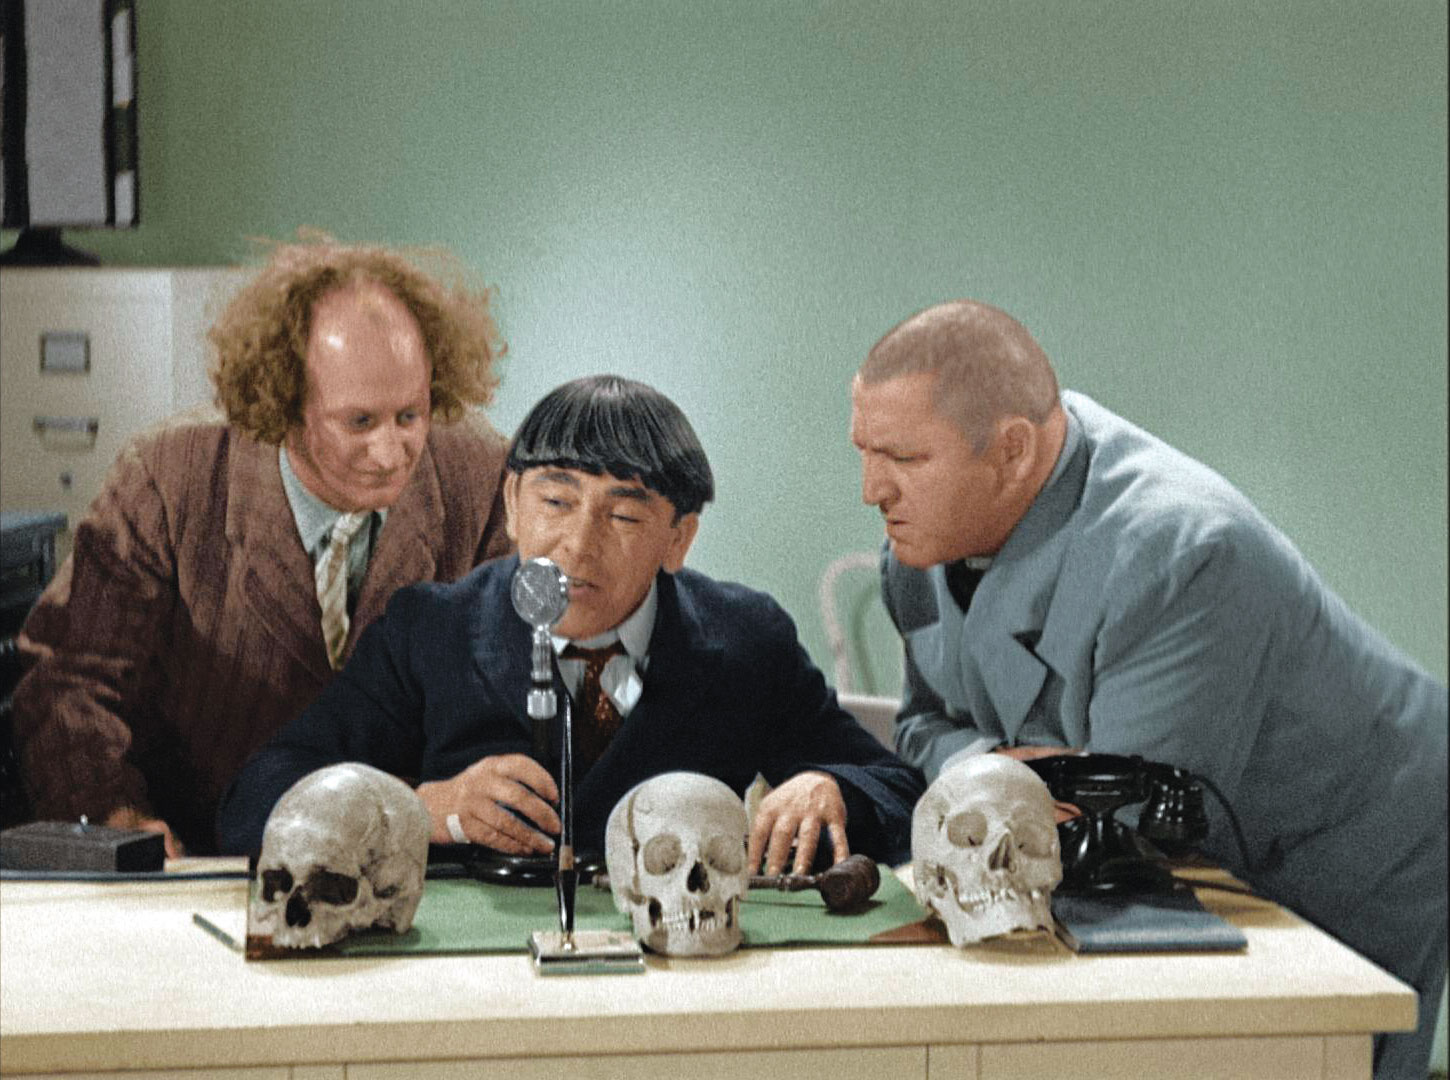 ... Exclusive Interview; Updates on THE THREE STOOGES and MOVIE 43